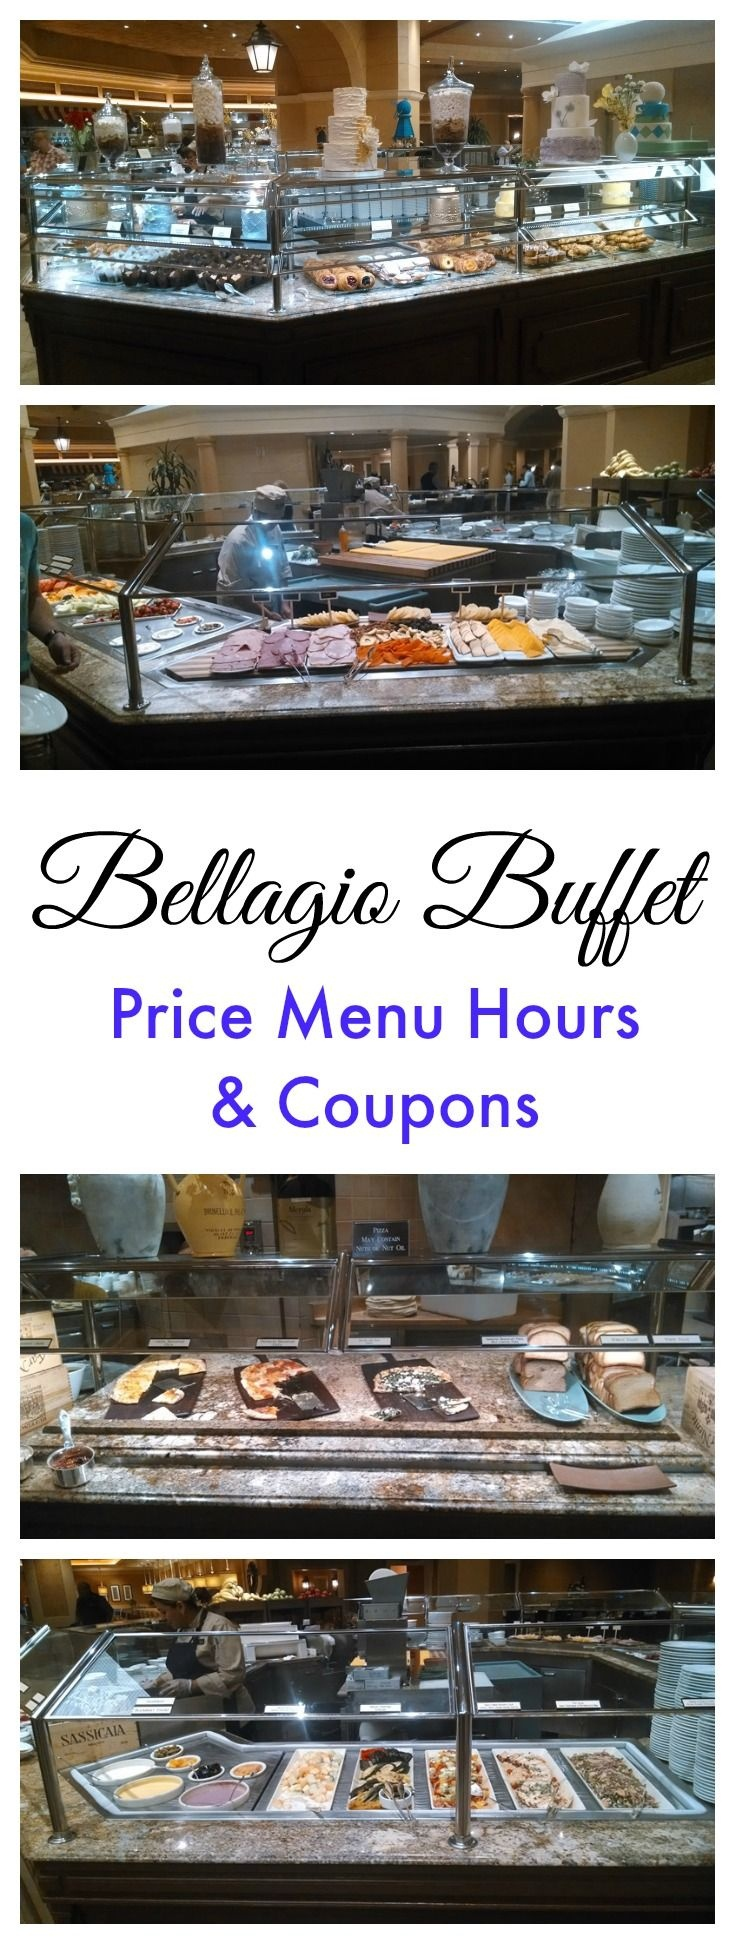 Las Vegas Coupons 2 For 1 Discounts Buffet Deals Salad Bar Buffet - Free Las Vegas Buffet Coupons Printable